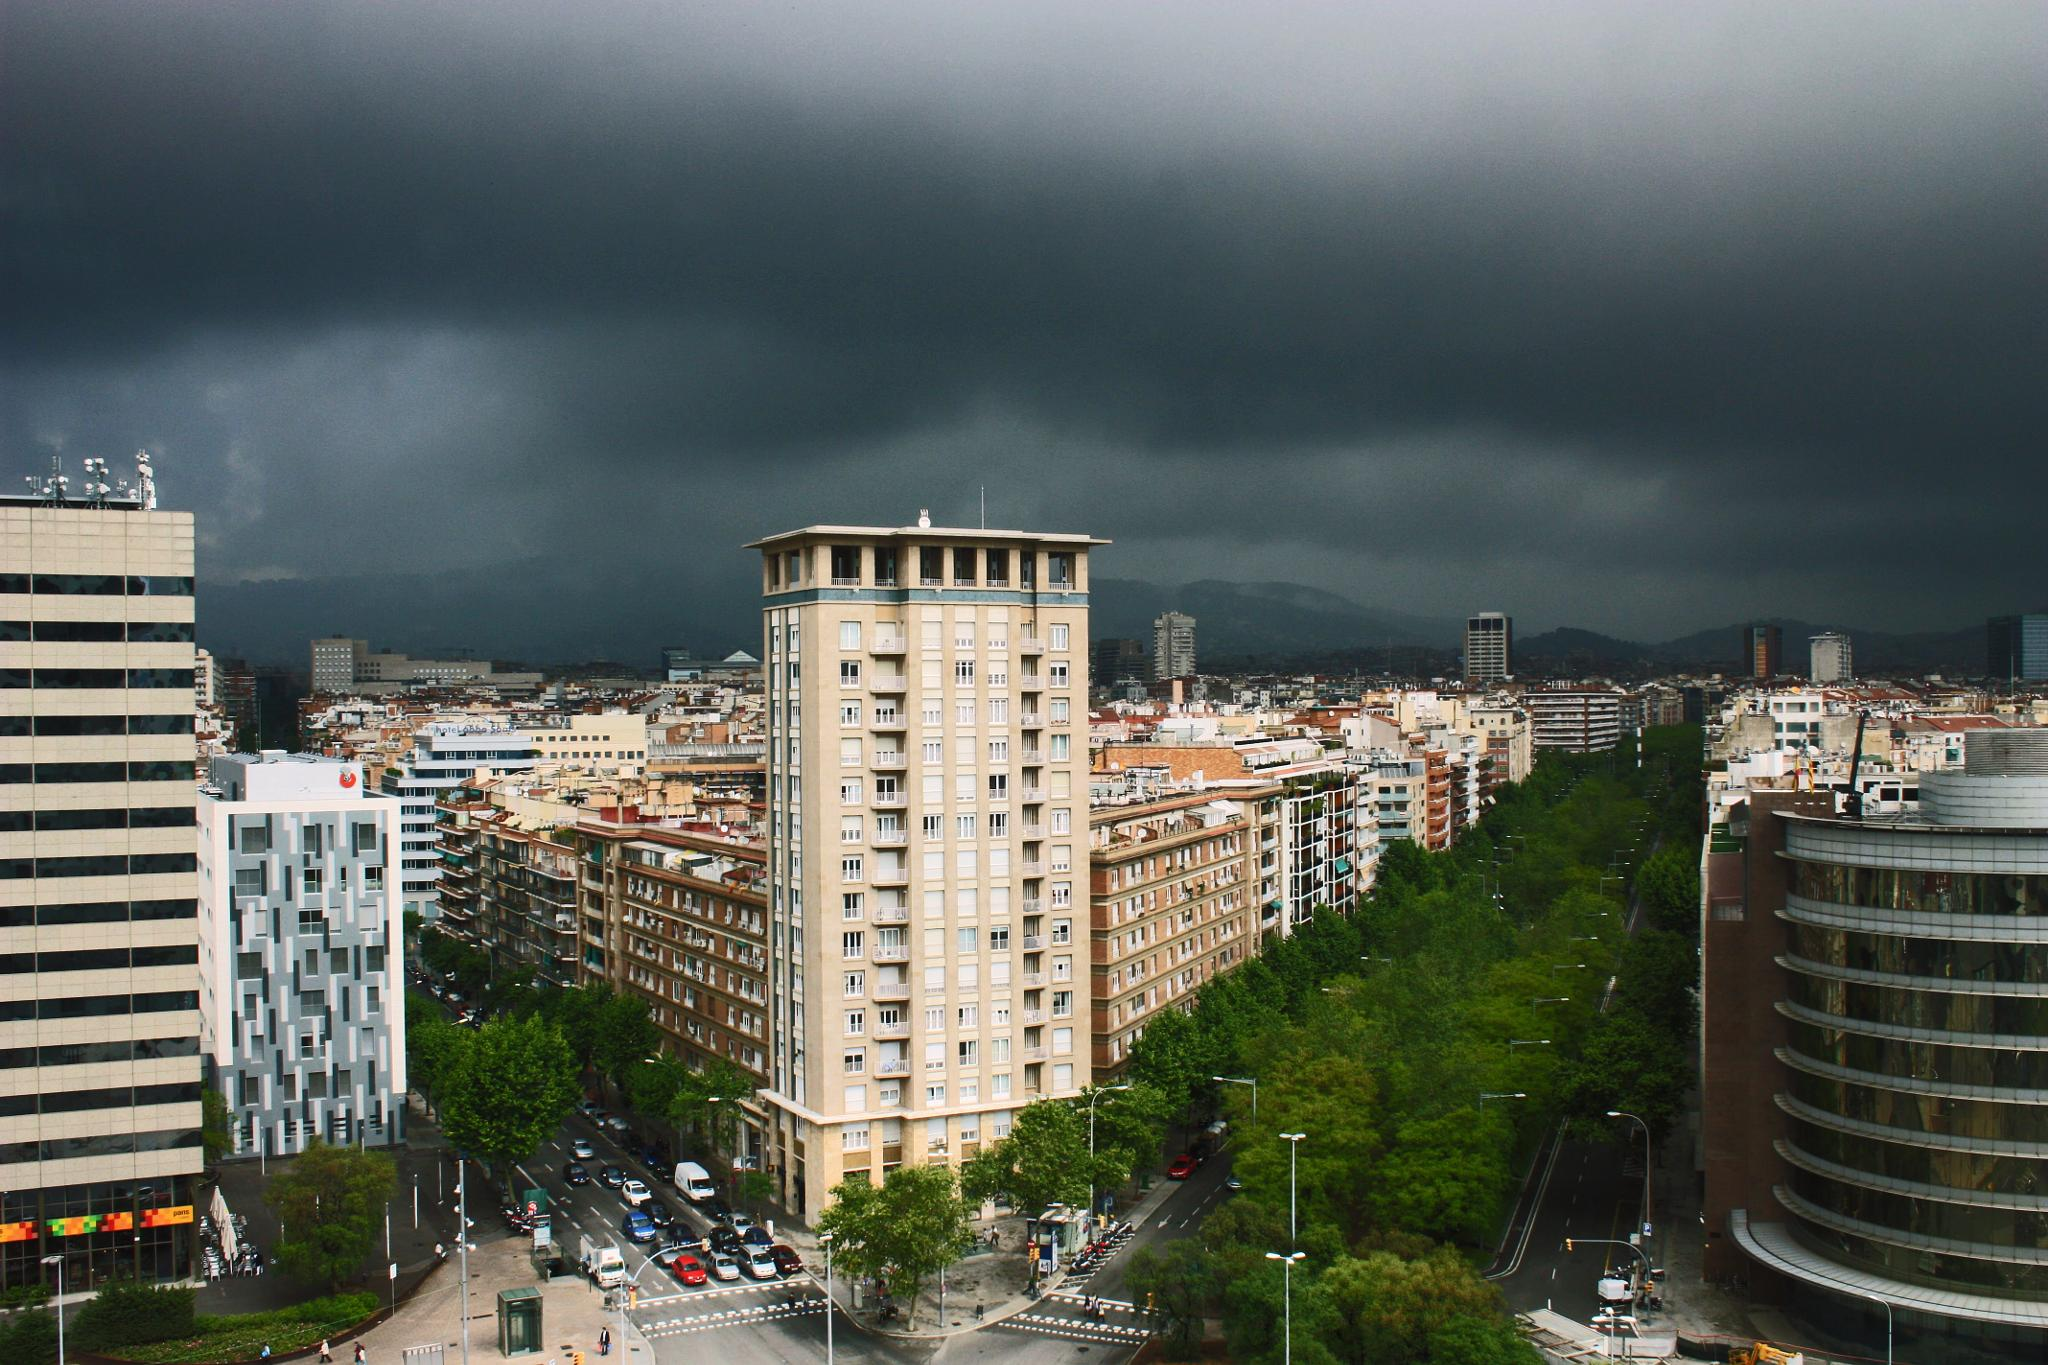 Stormy Afternoon in Barcelona by Slimboyfat